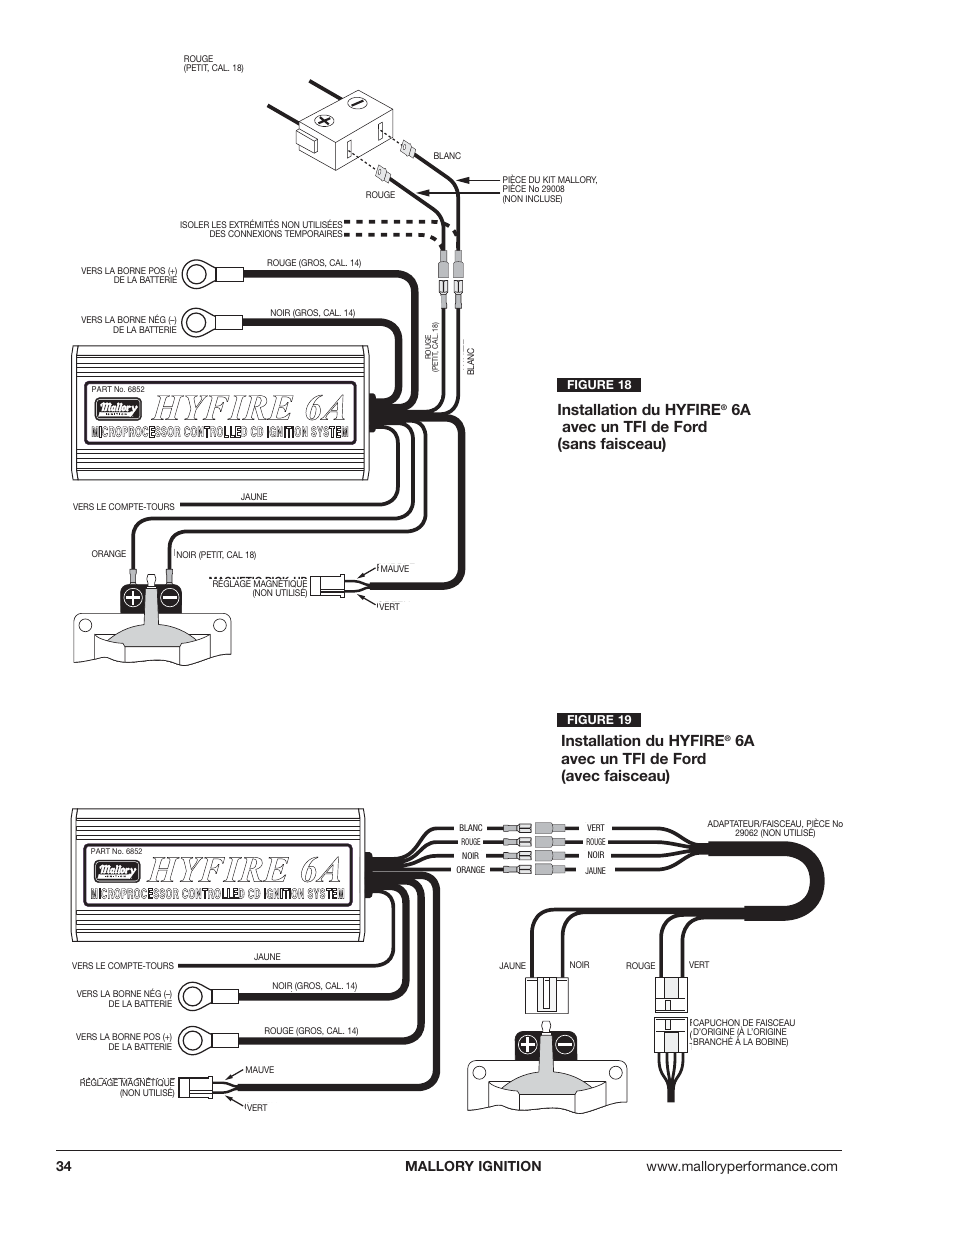 Mallory Ignition Hyfire Wiring Diagram